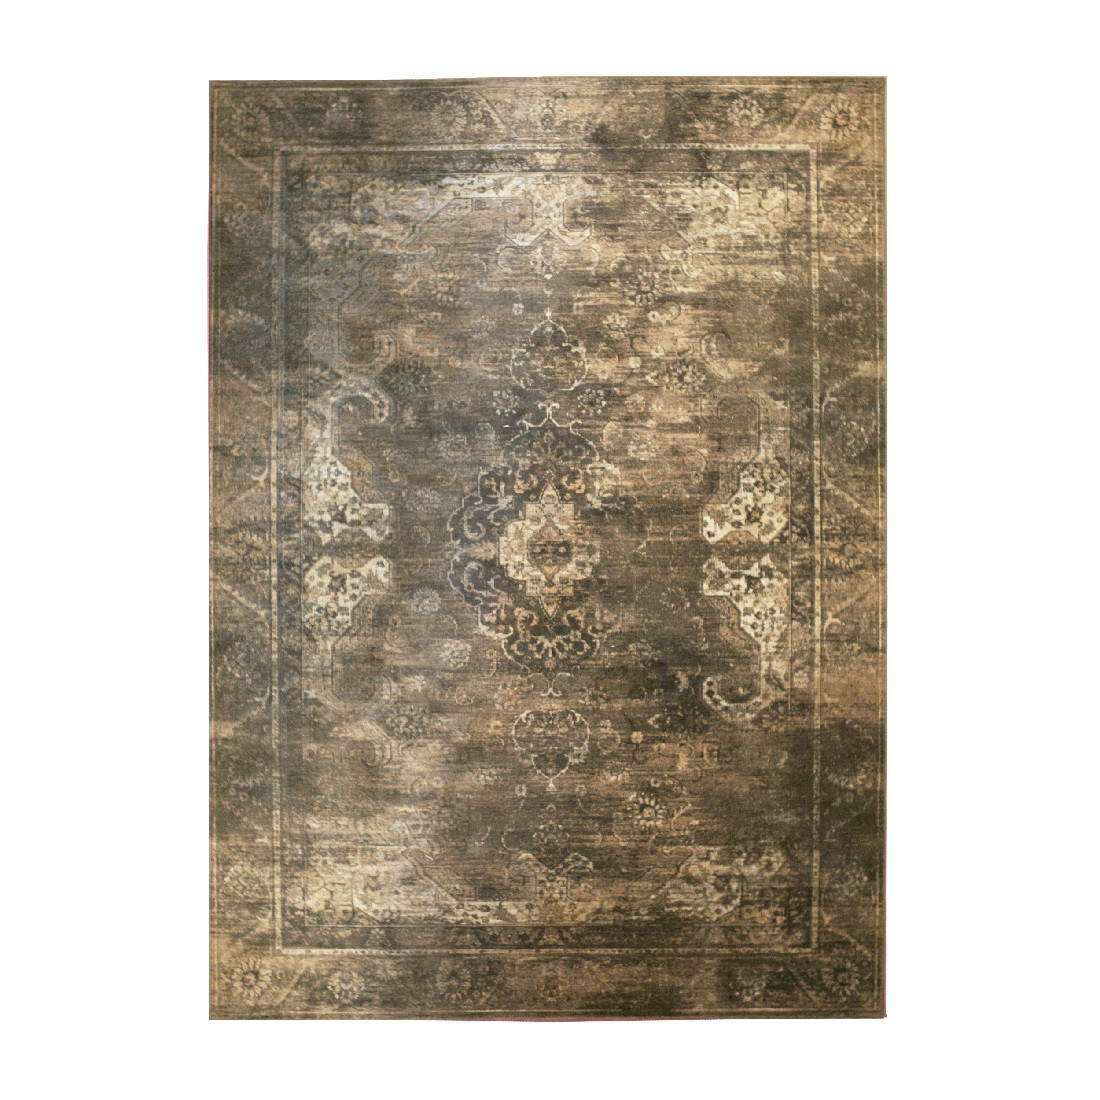 By-Boo 6175 Carpet Liv Taupe 200x290cm